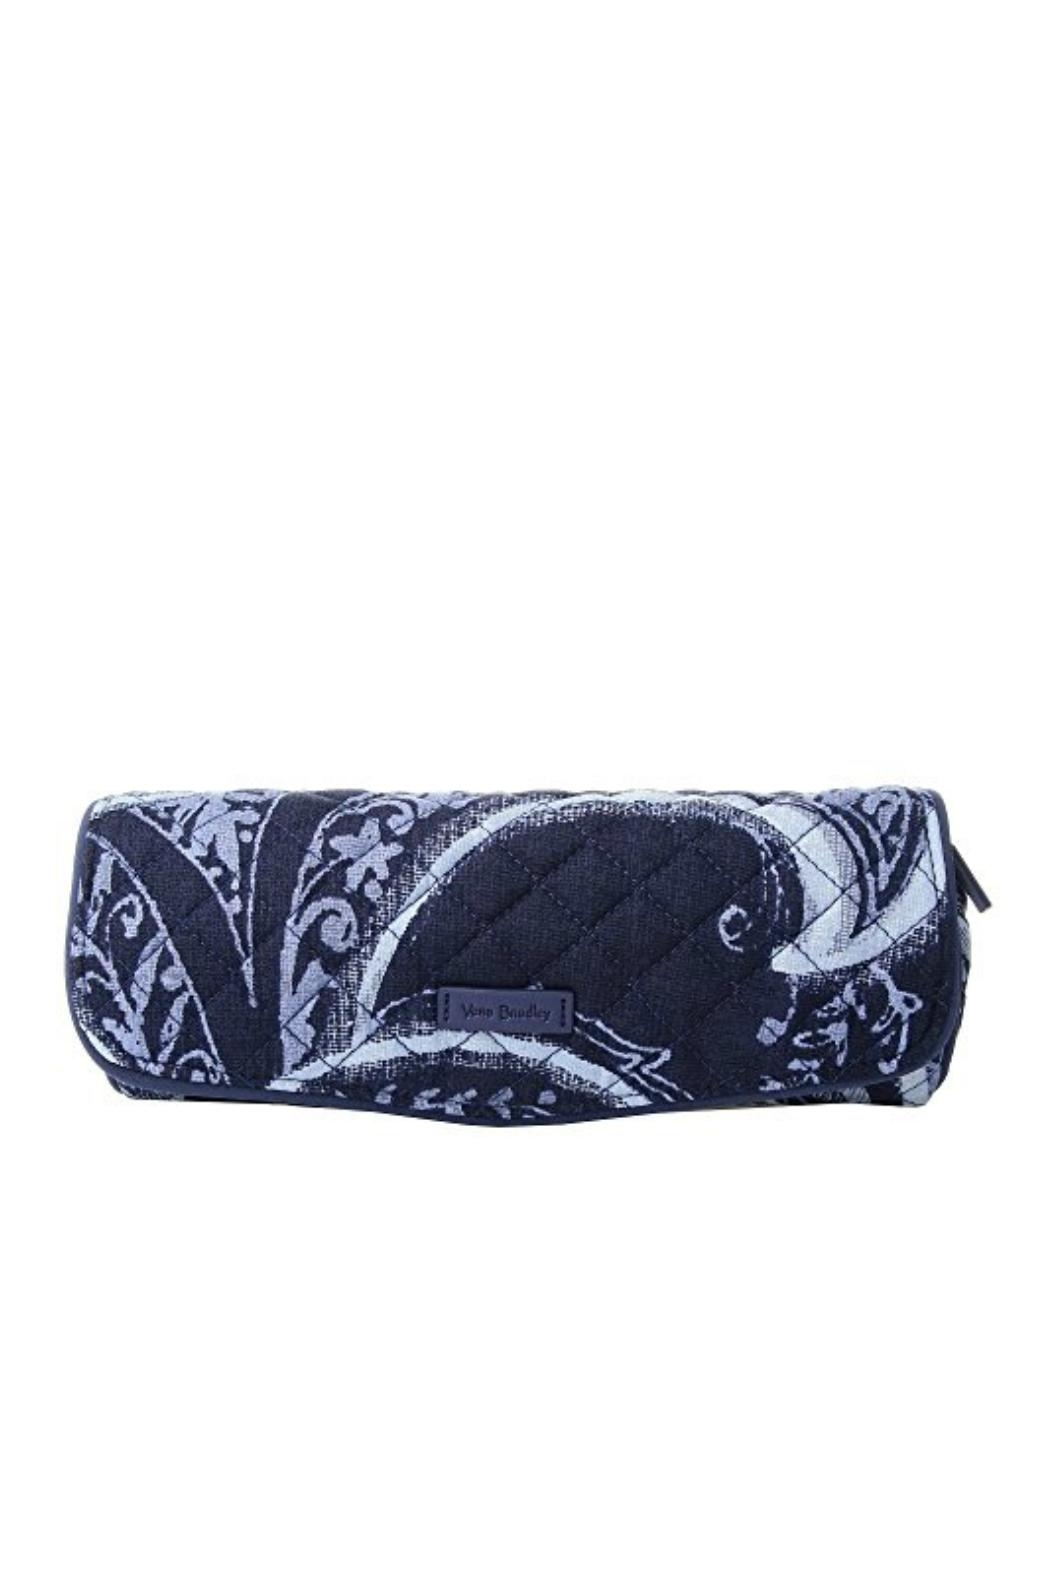 Vera Bradley Indio On-a-Roll Case from Kentucky by Mimi s Gift ... 919f4a4037795